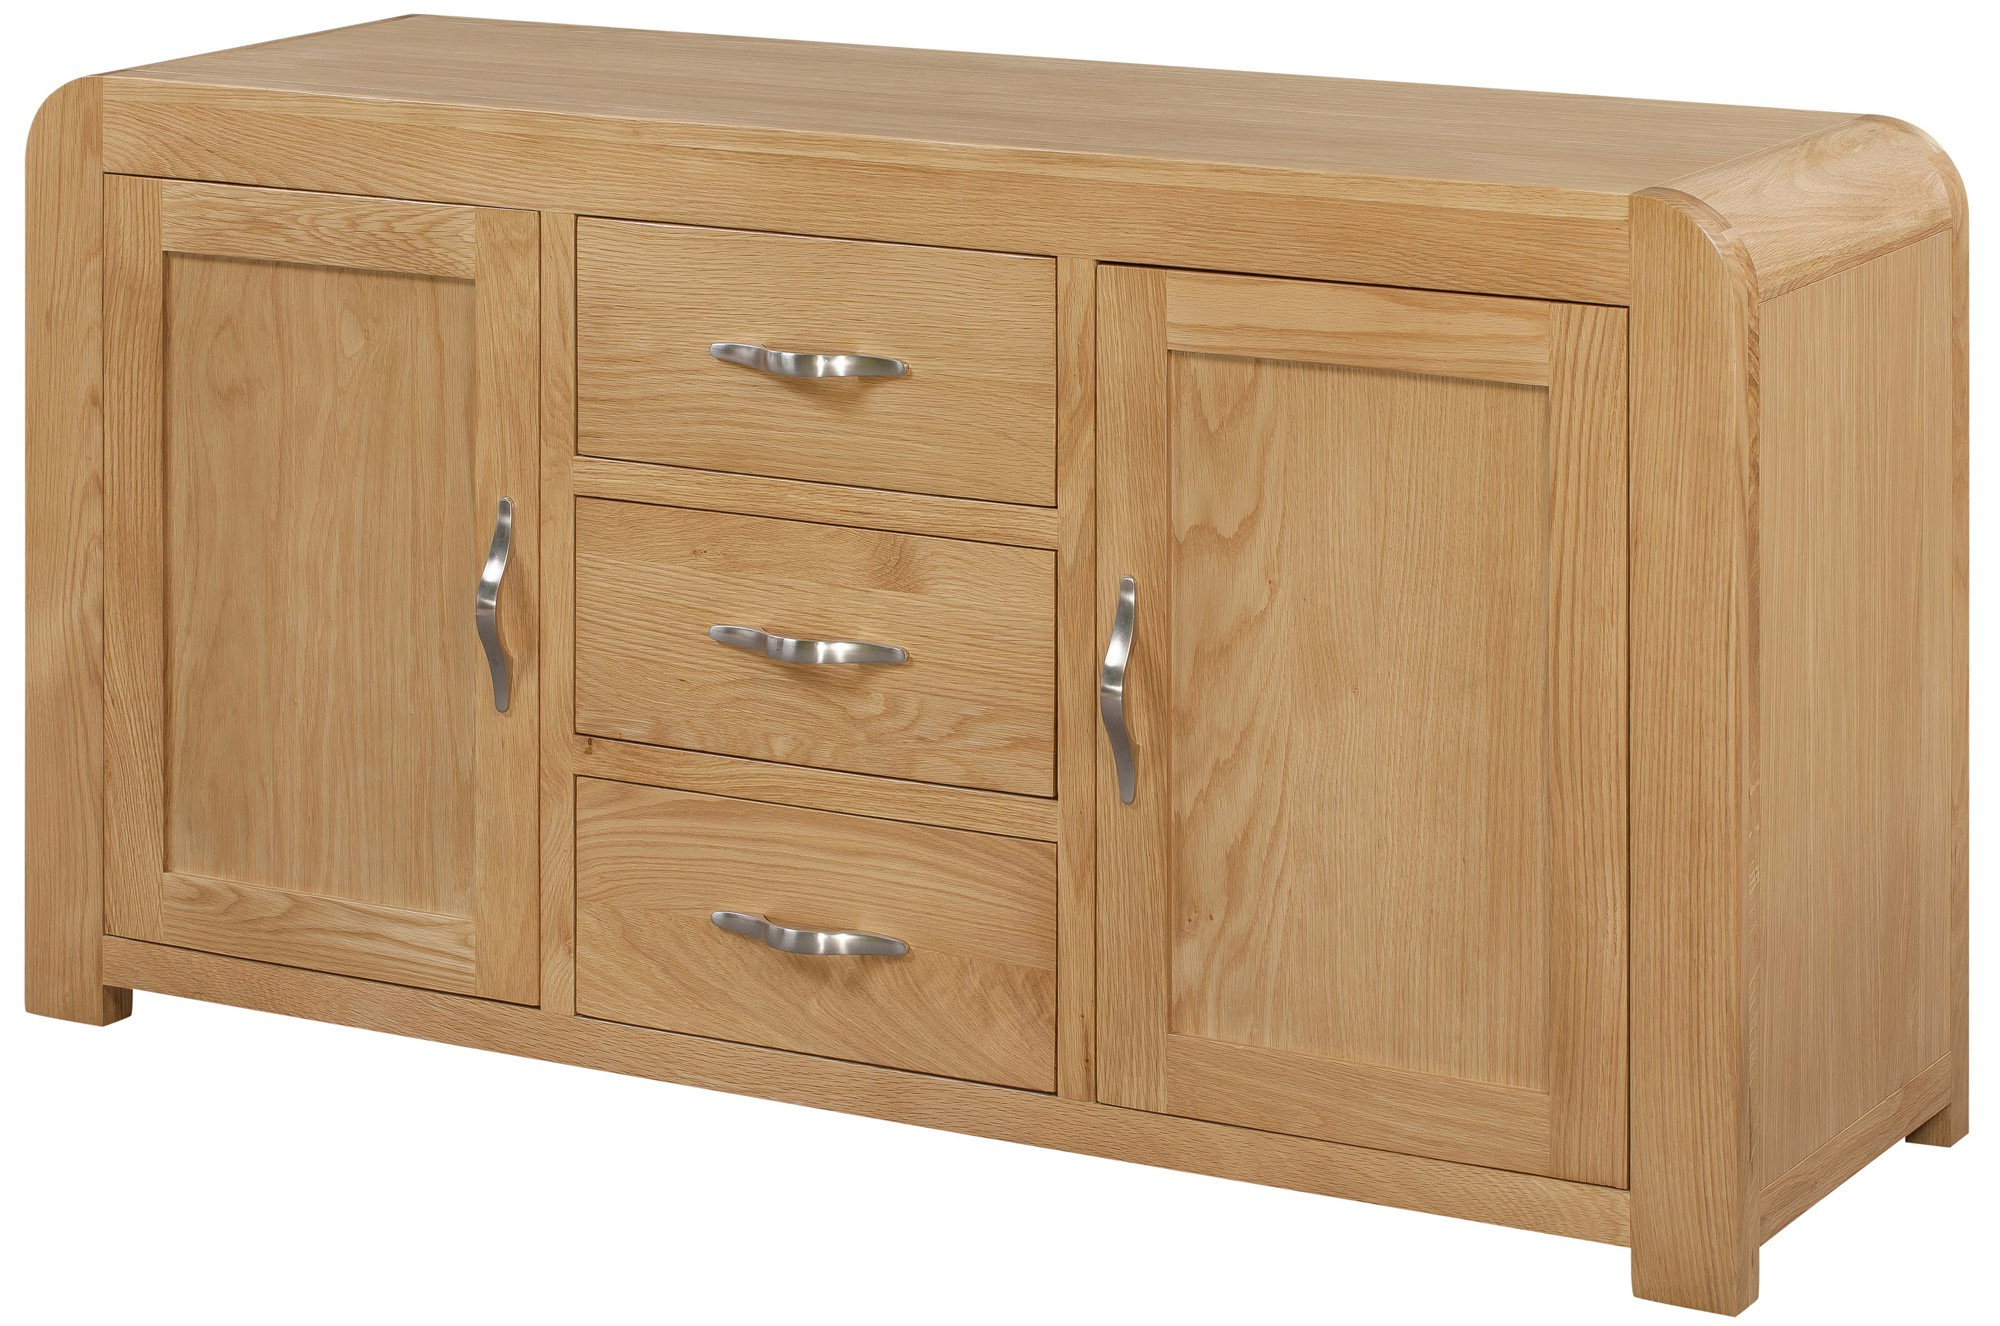 Well Liked Venice Sideboard With 2 Doors & 3 Drawers – Venice Oak Range – Shop Regarding Walnut Finish 2 Door/3 Drawer Sideboards (Gallery 4 of 20)